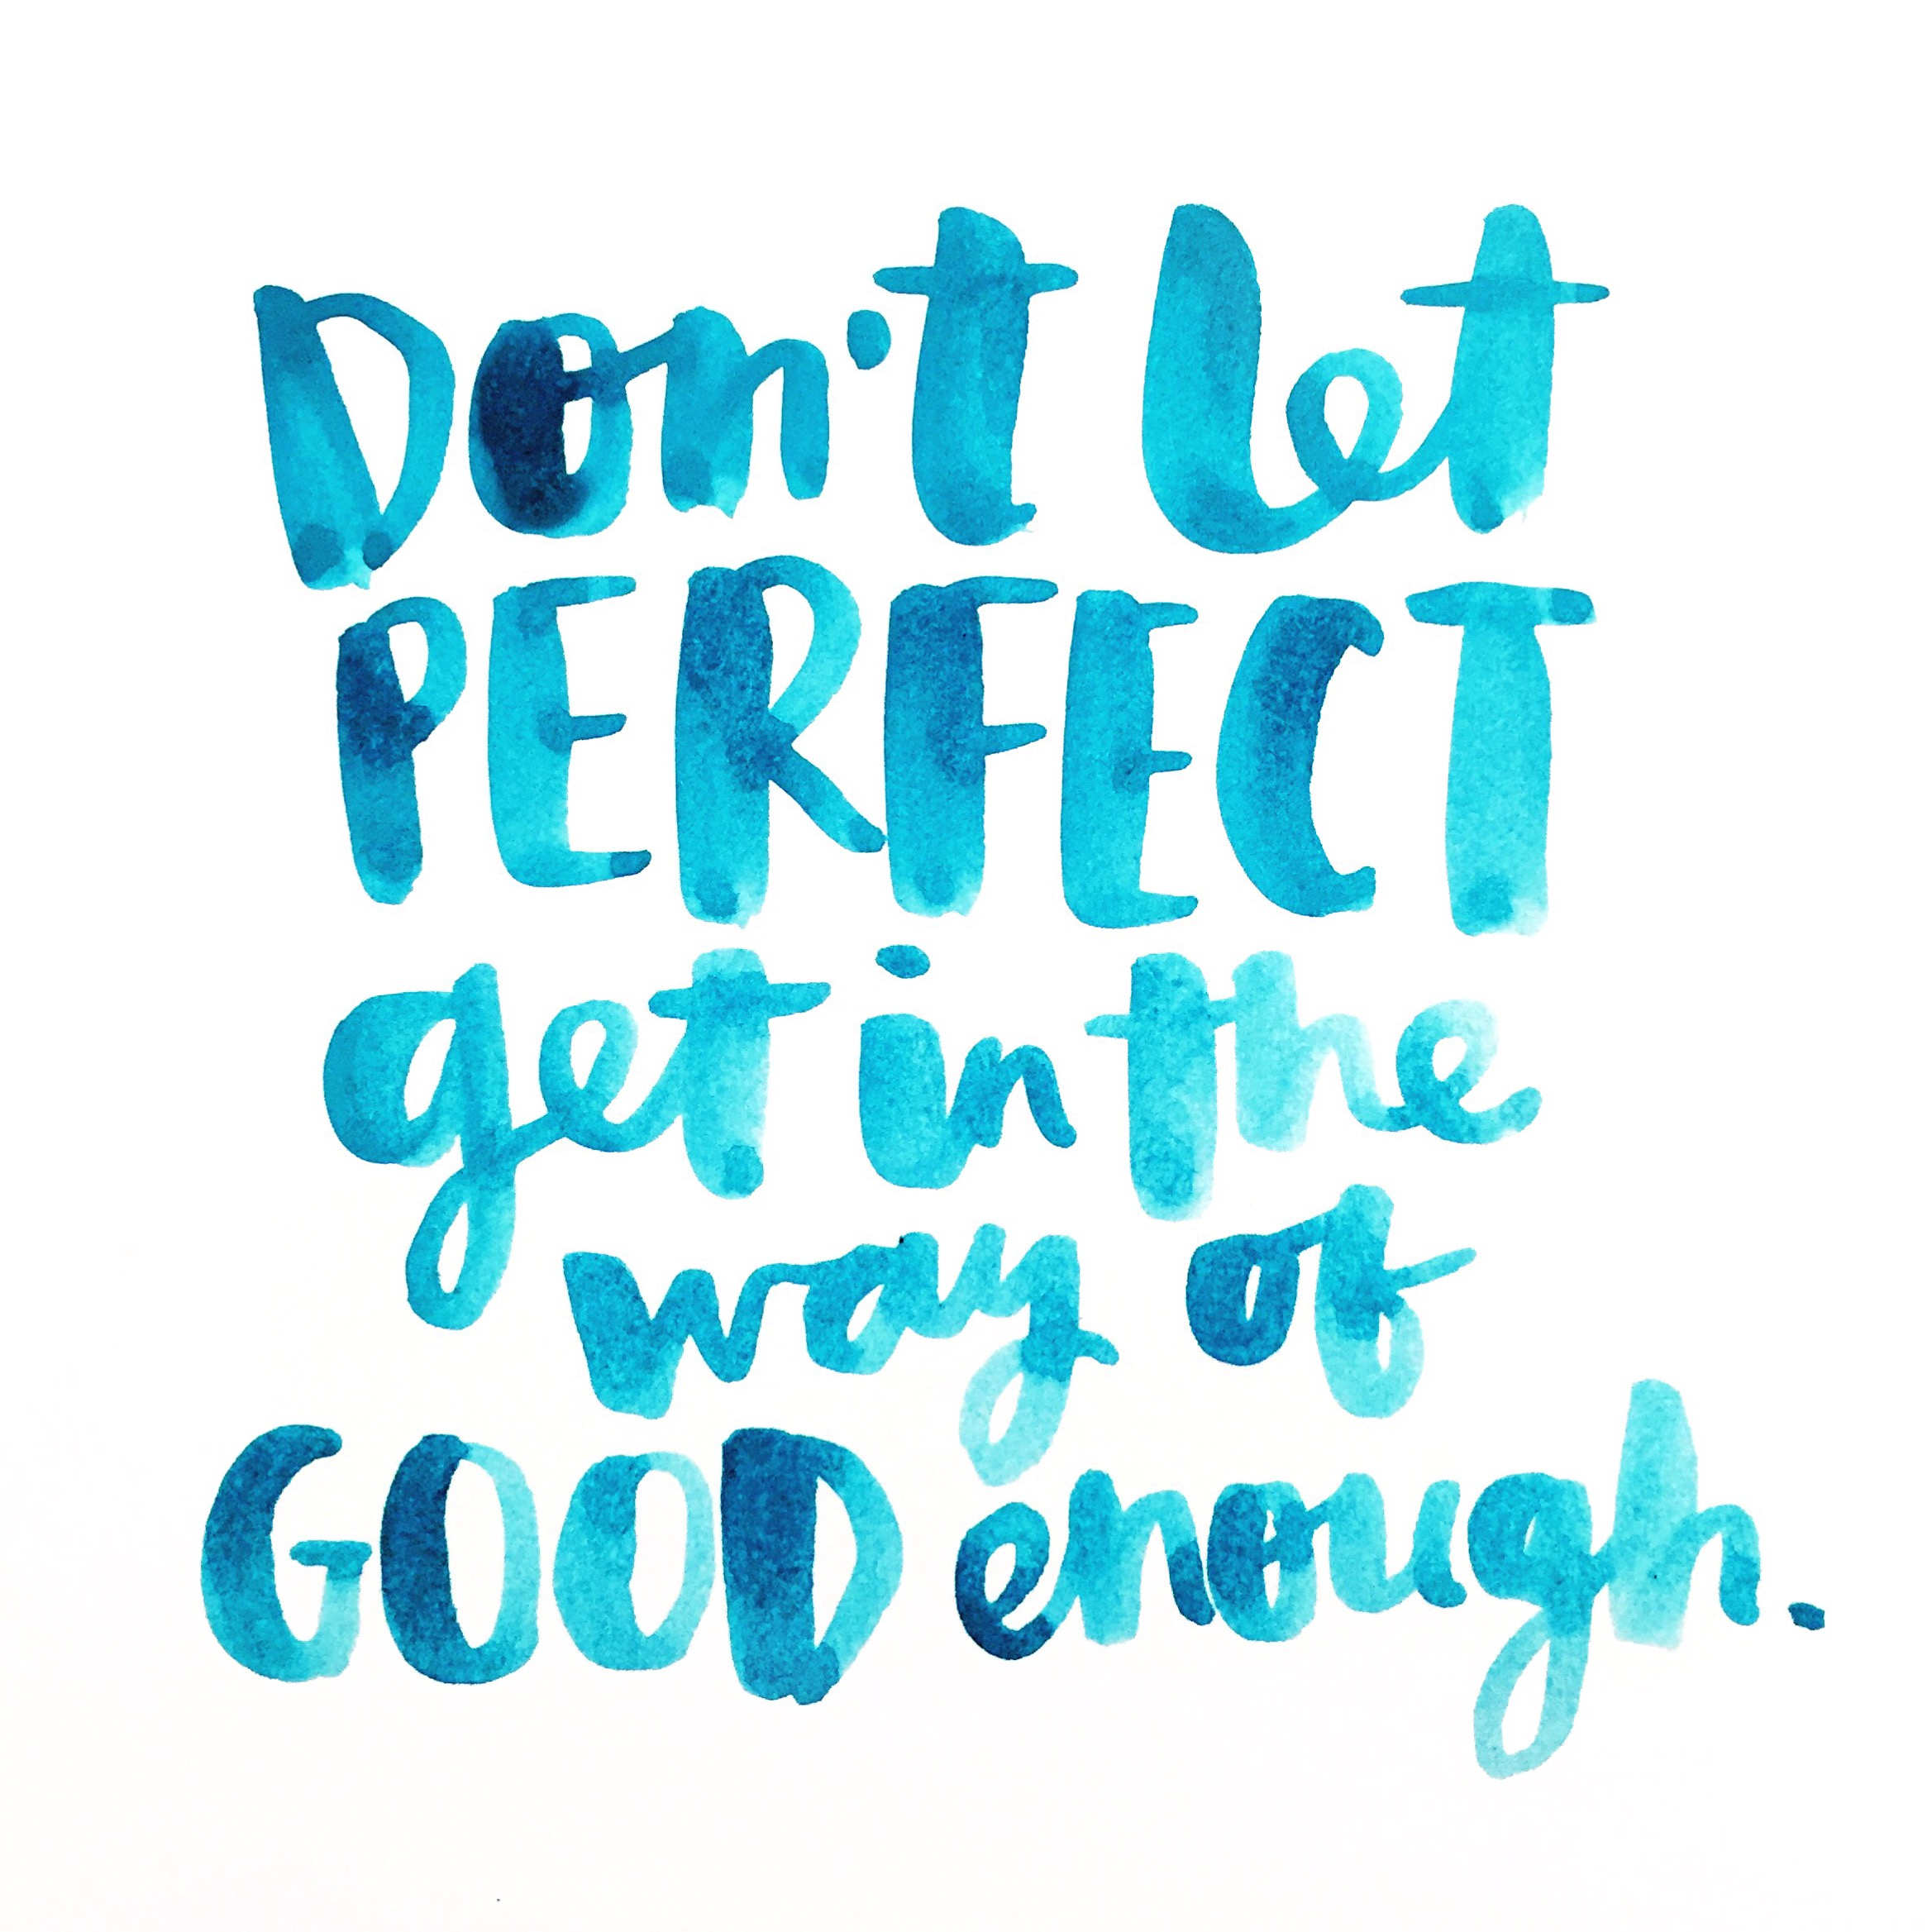 Fantastic brush script quote by Amy Tangerine